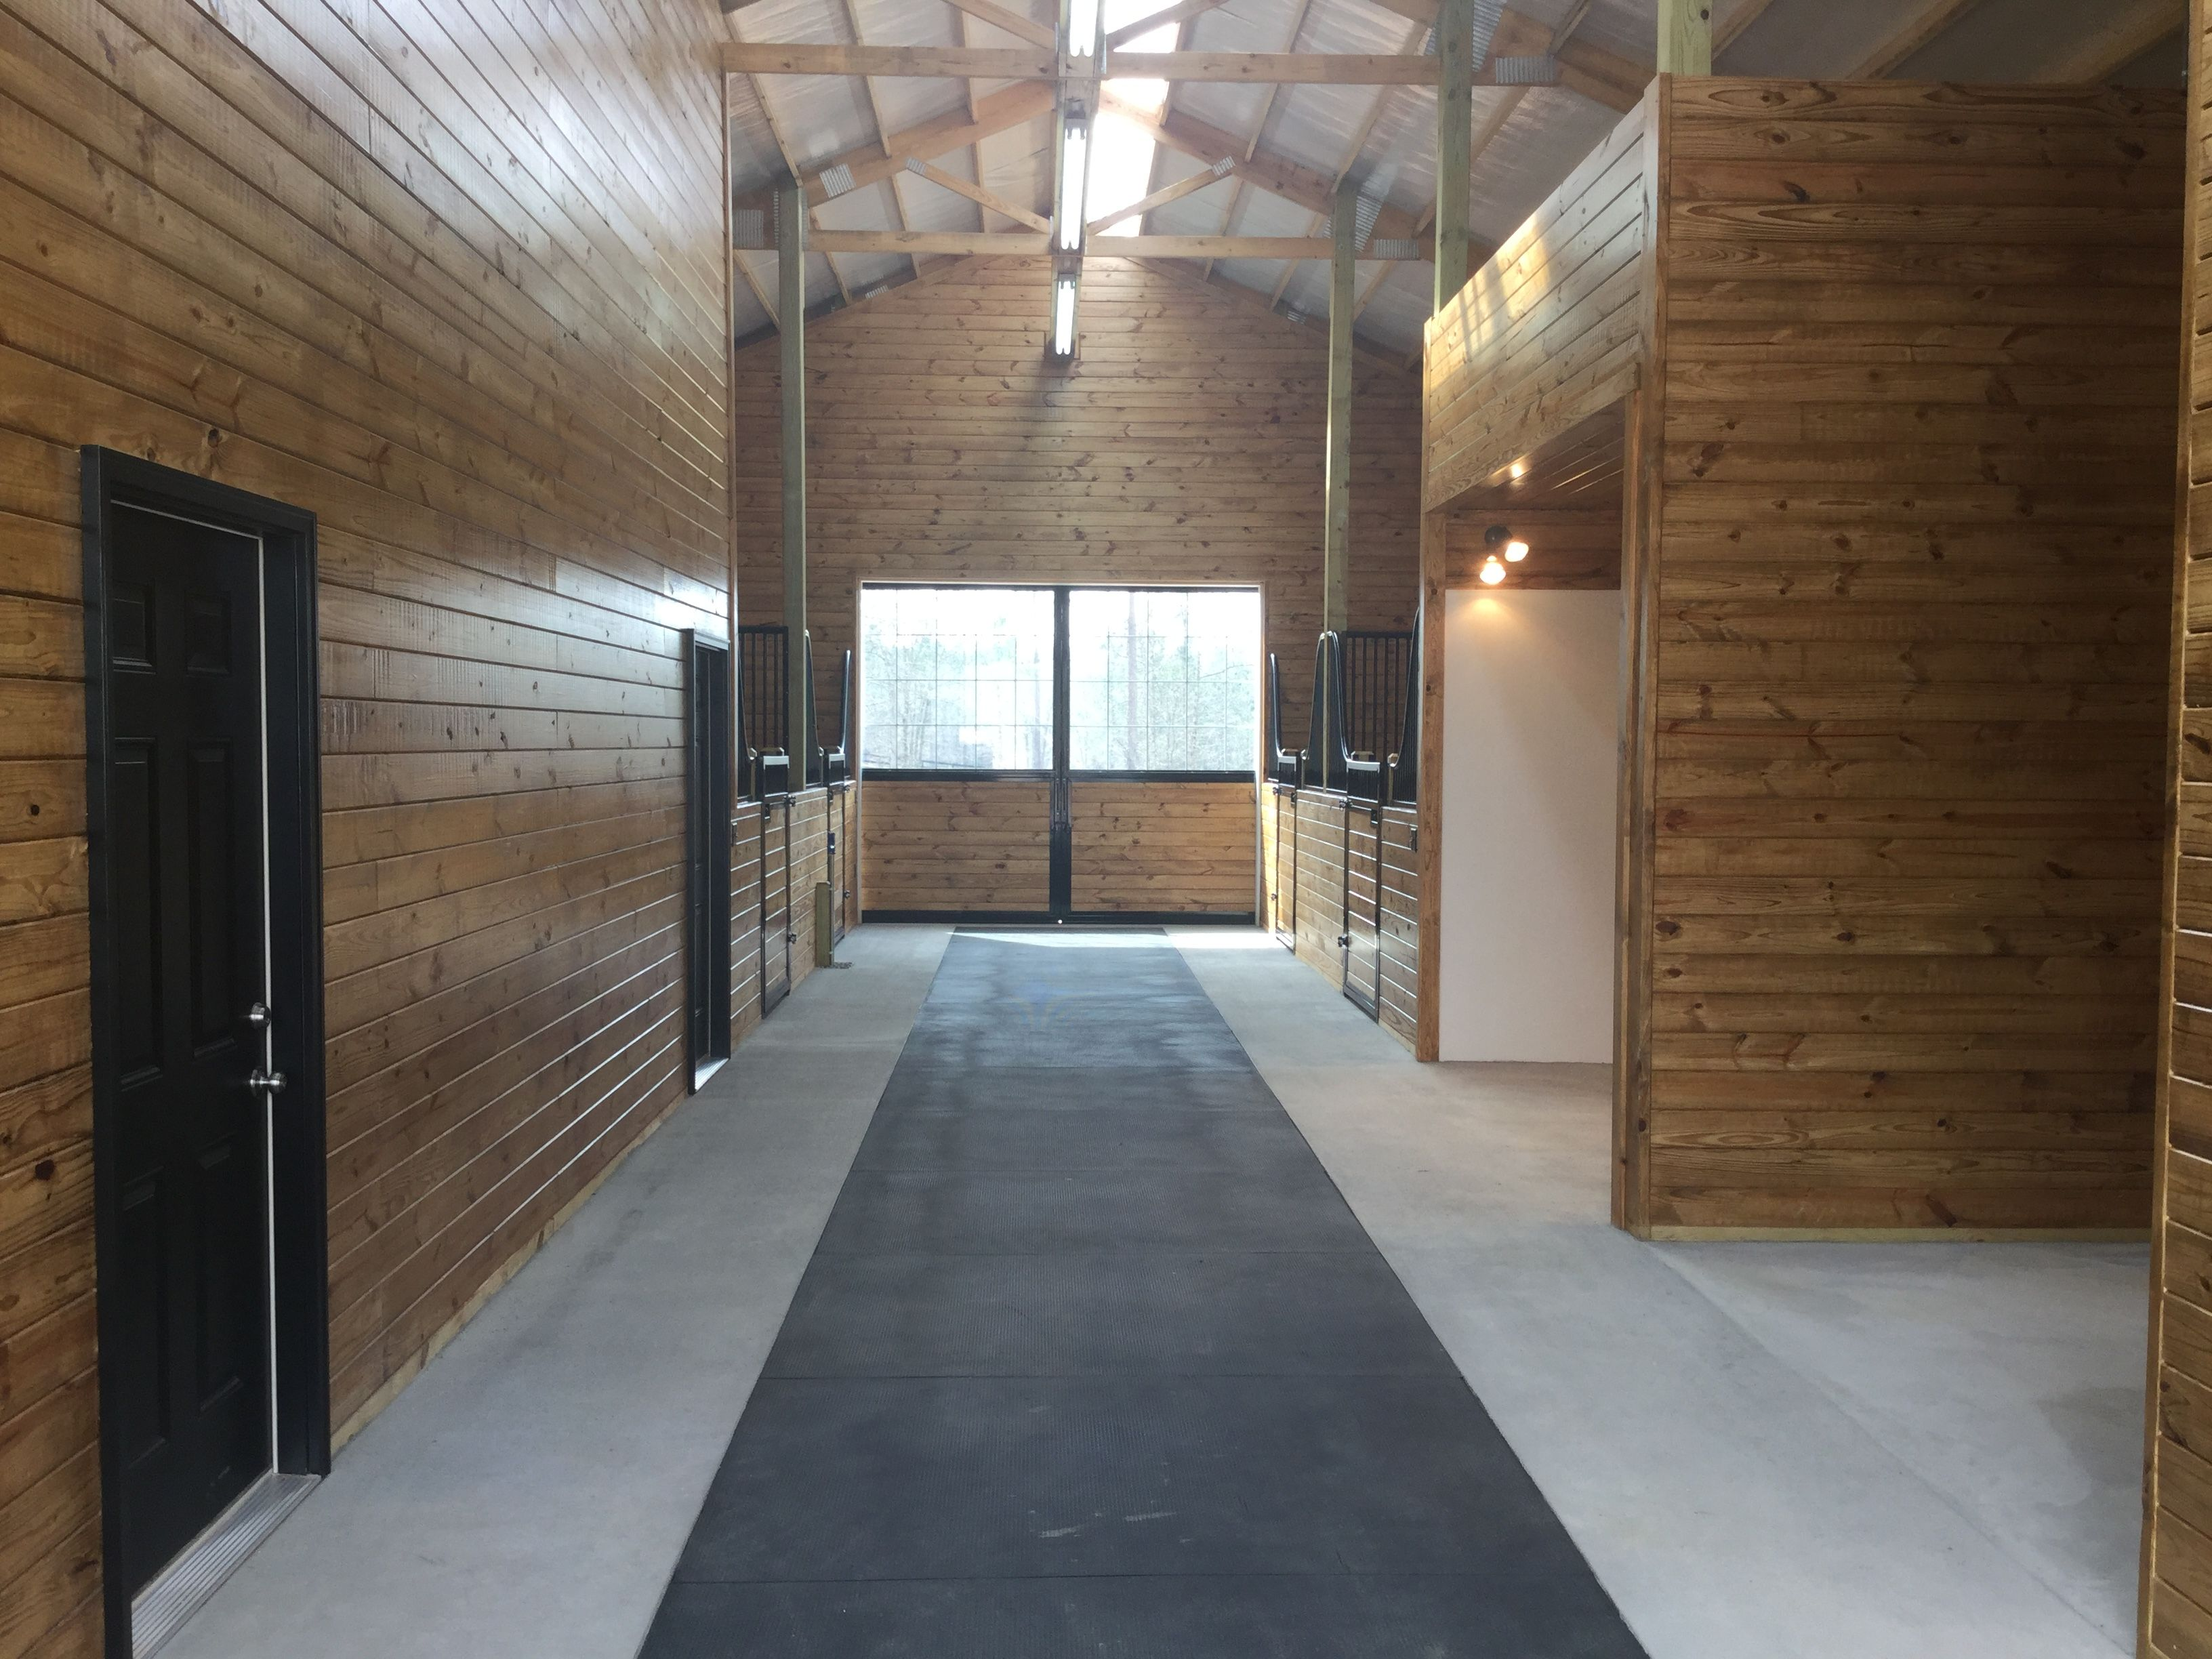 Horse Barn With Rubber Mats Down Center Aisle With Flush